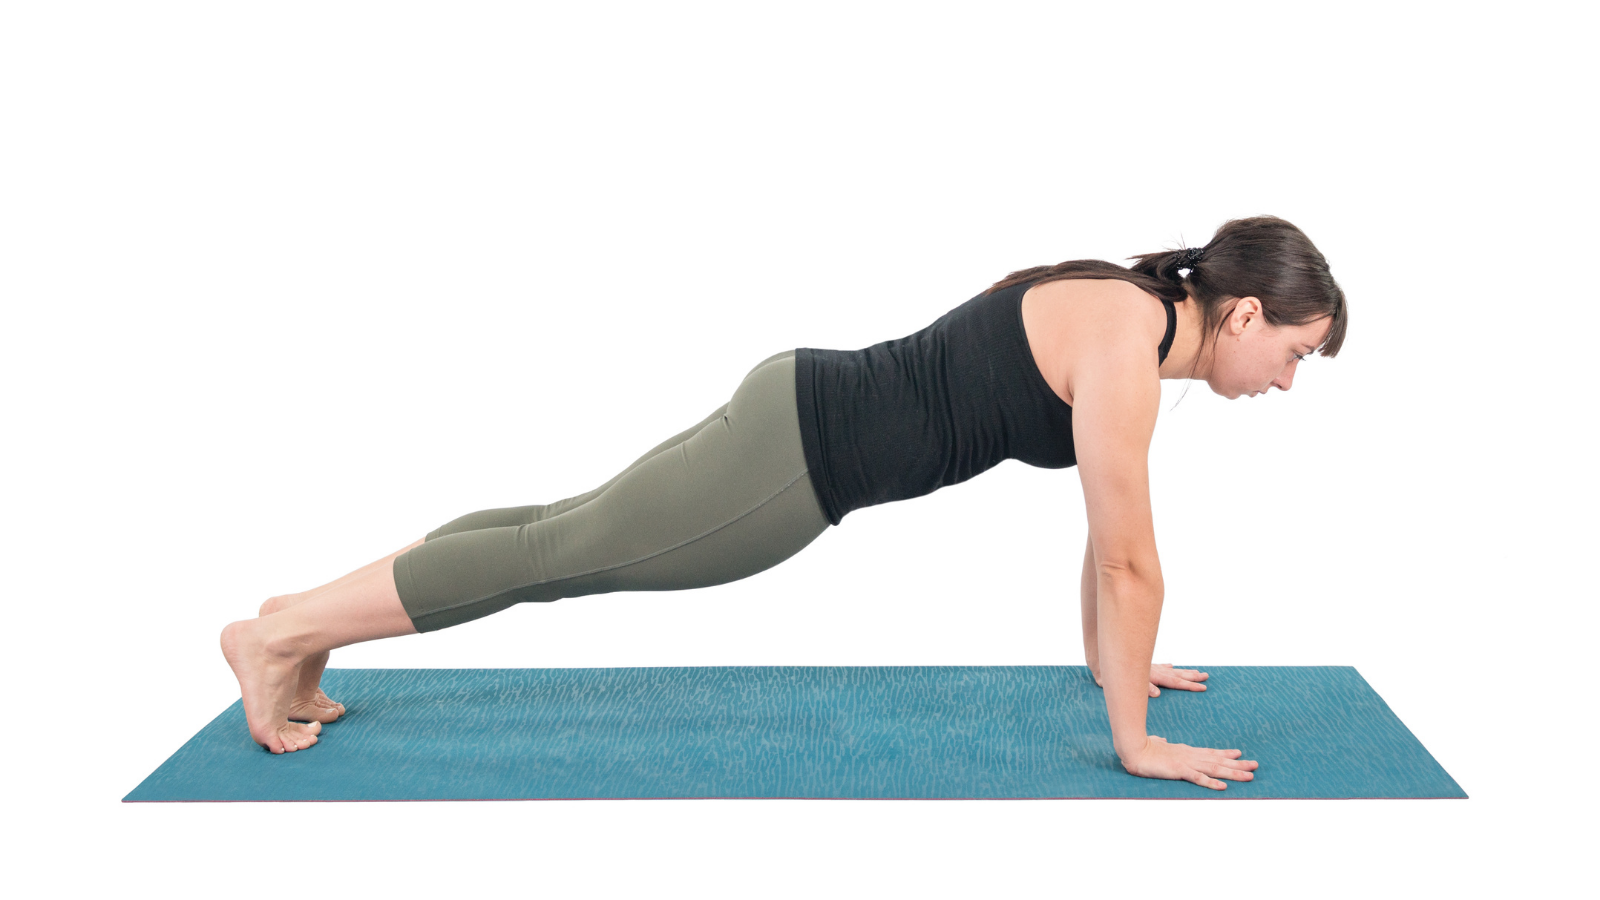 Plank Pose a core strengthening yoga pose